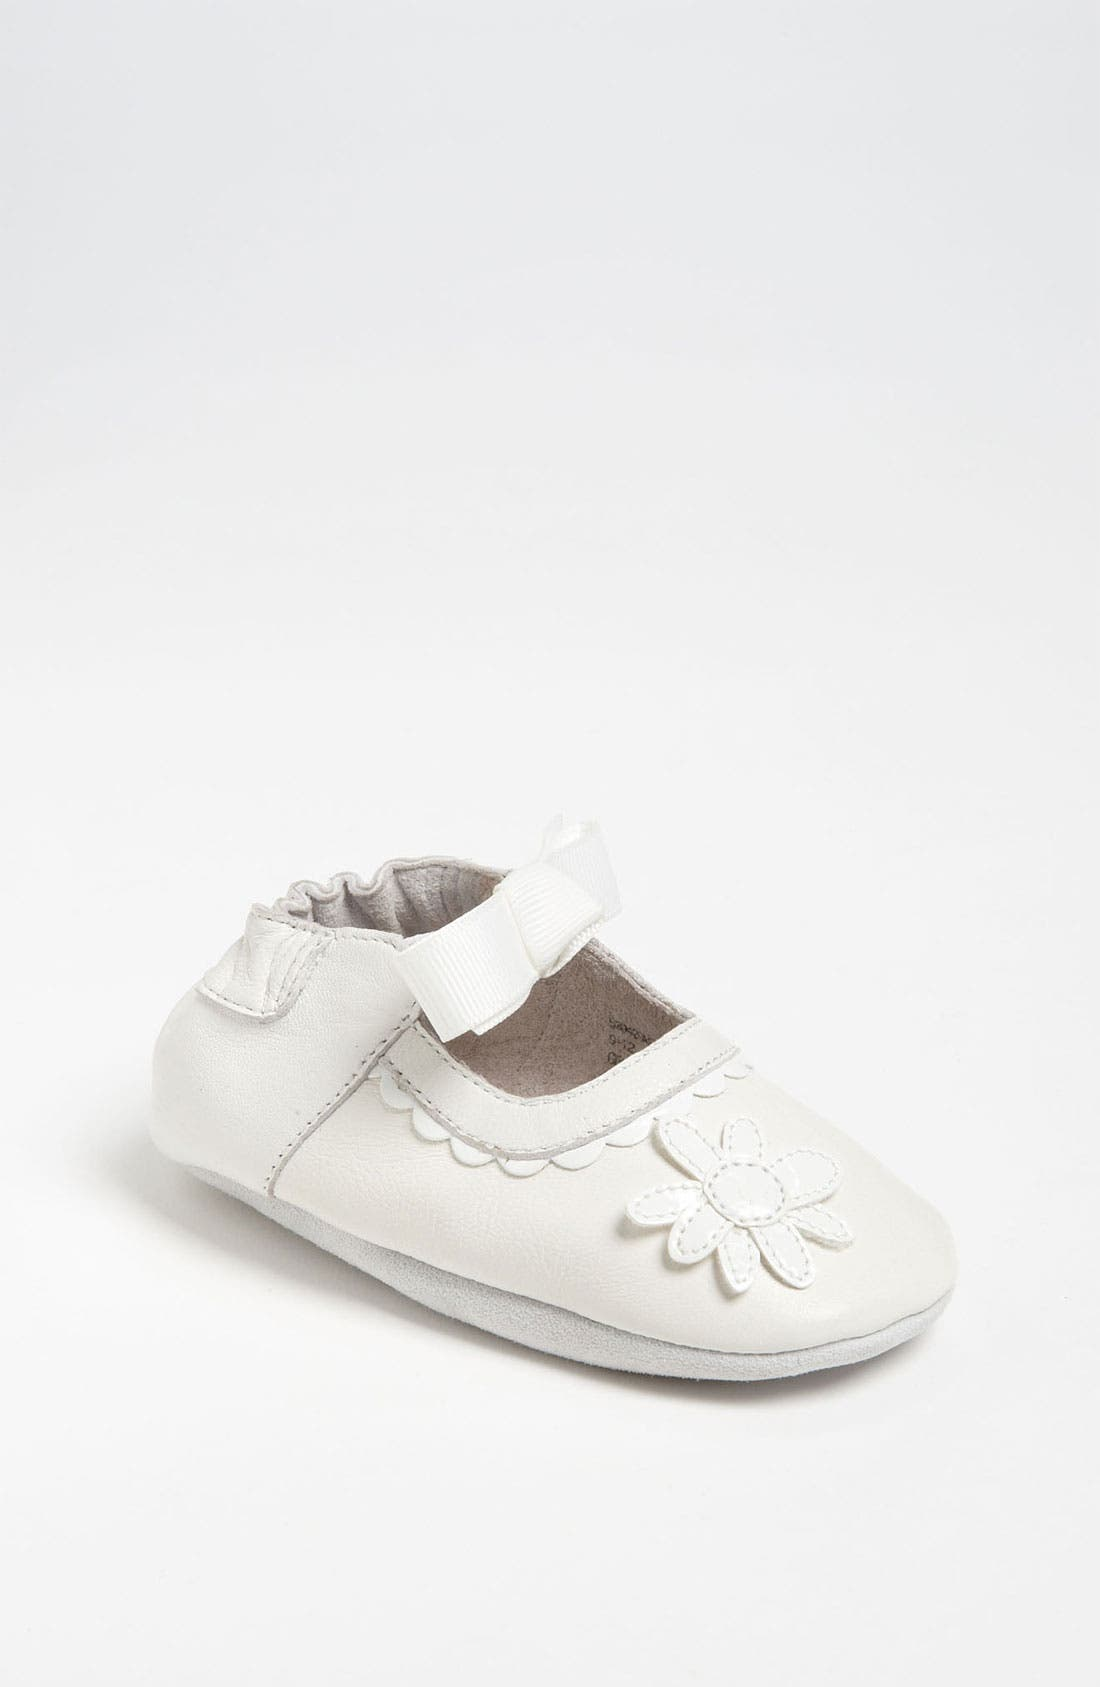 Alternate Image 1 Selected - Nordstrom Baby 'Daisy' Crib Shoe (Infant)